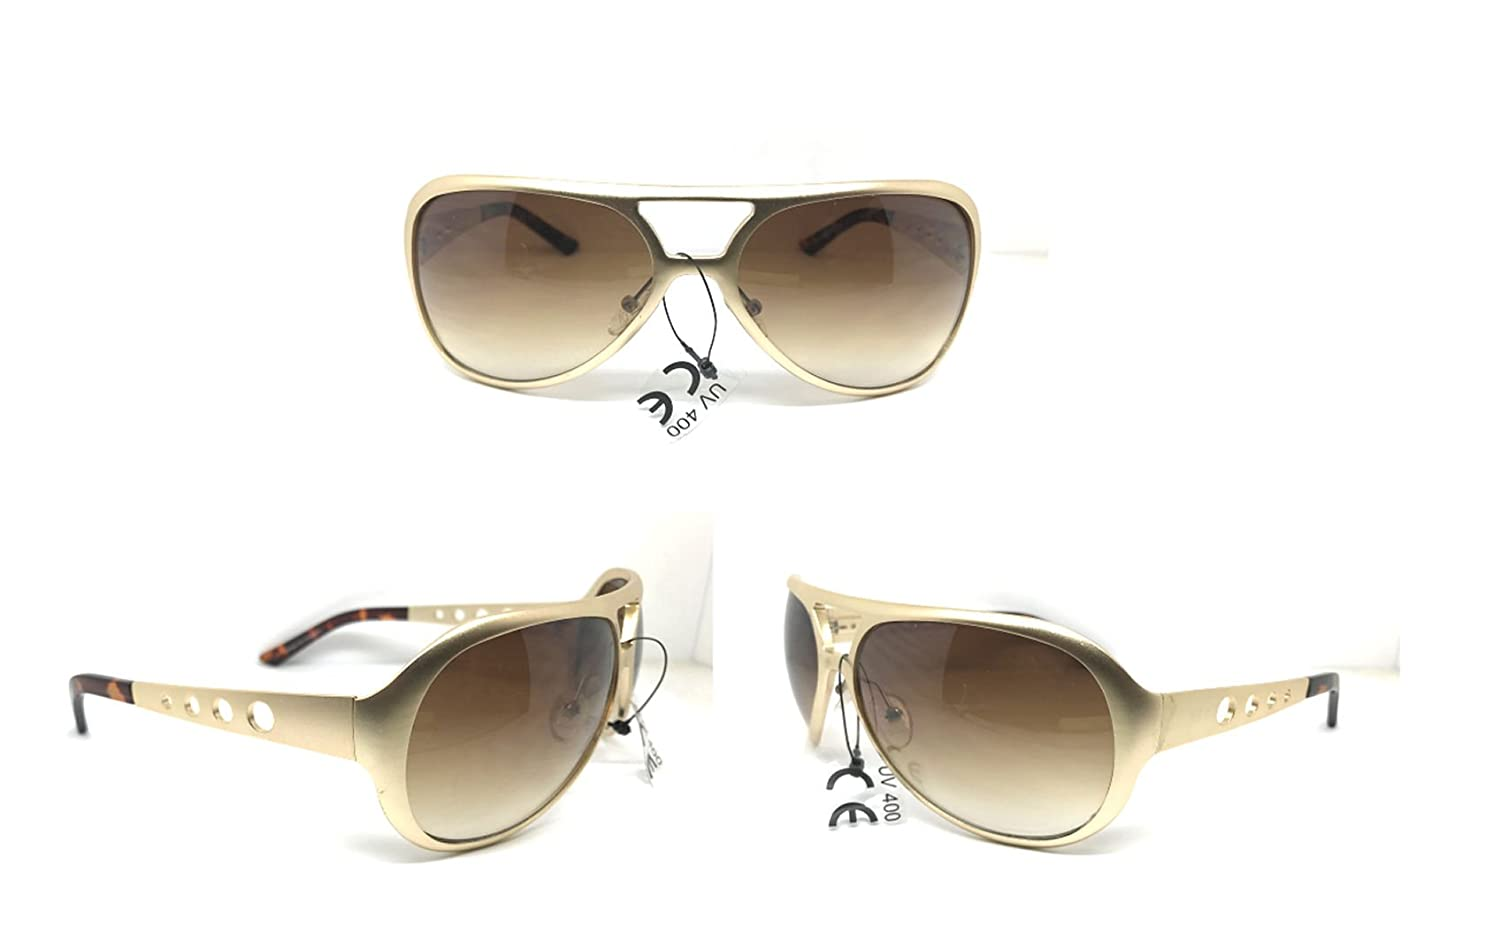 Amazon.com: elvis-sunglasses-all-metal-aviator-gold-aluminum ...